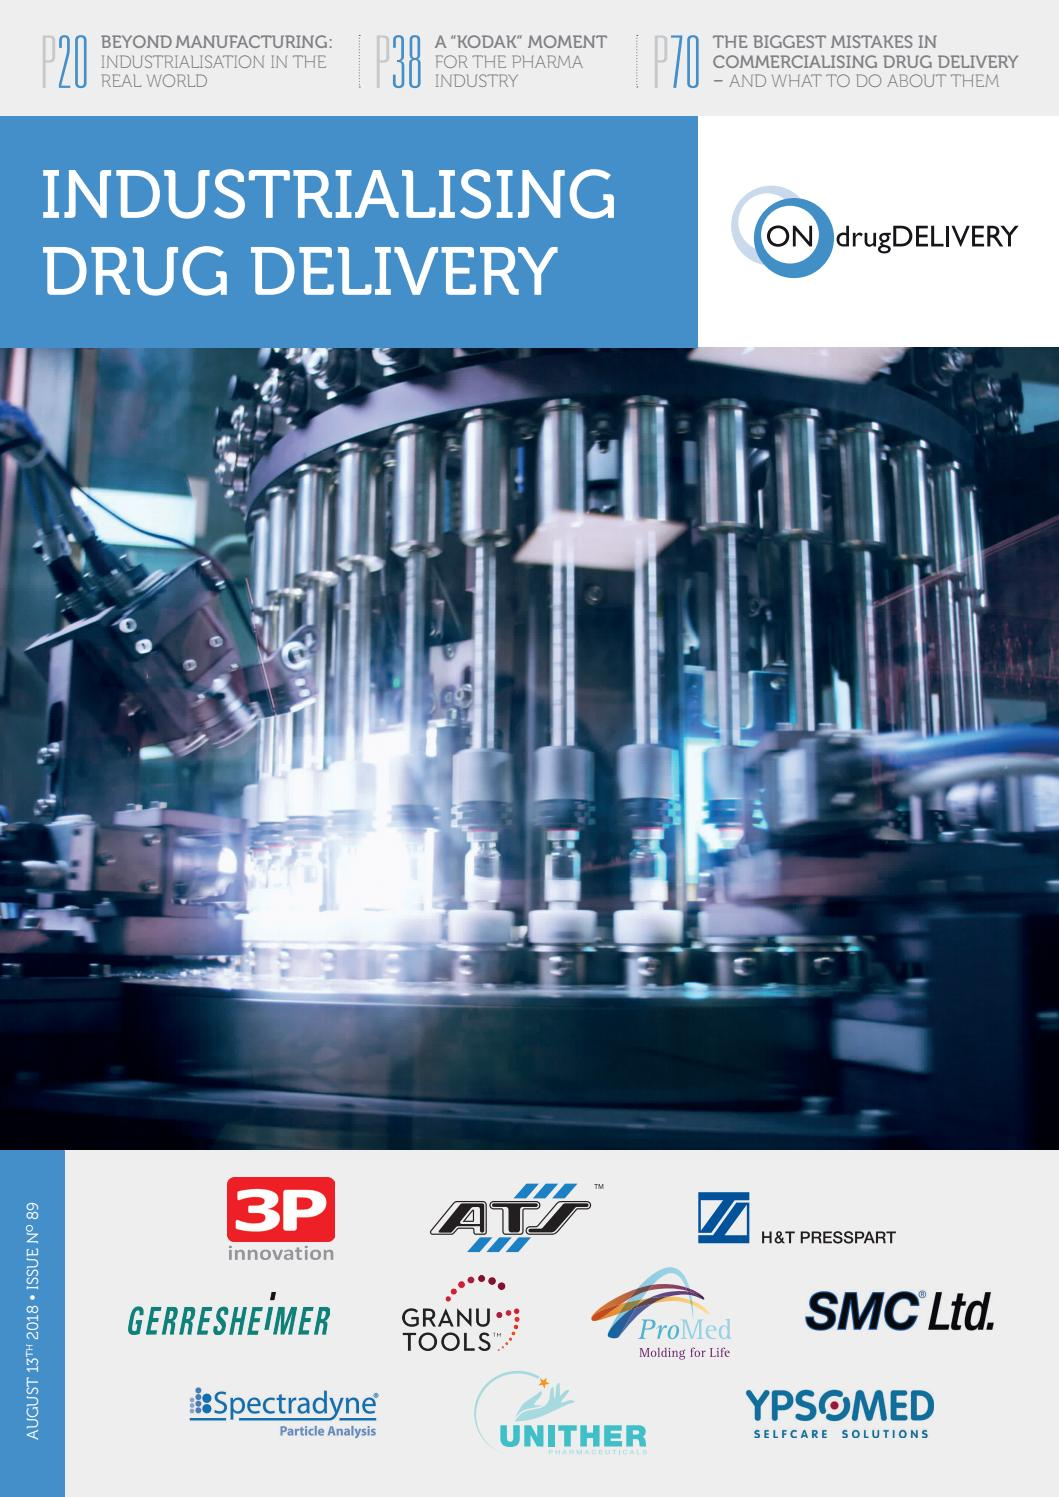 Industrialising Drug Delivery - ONdrugDelivery - Issue 89 - August